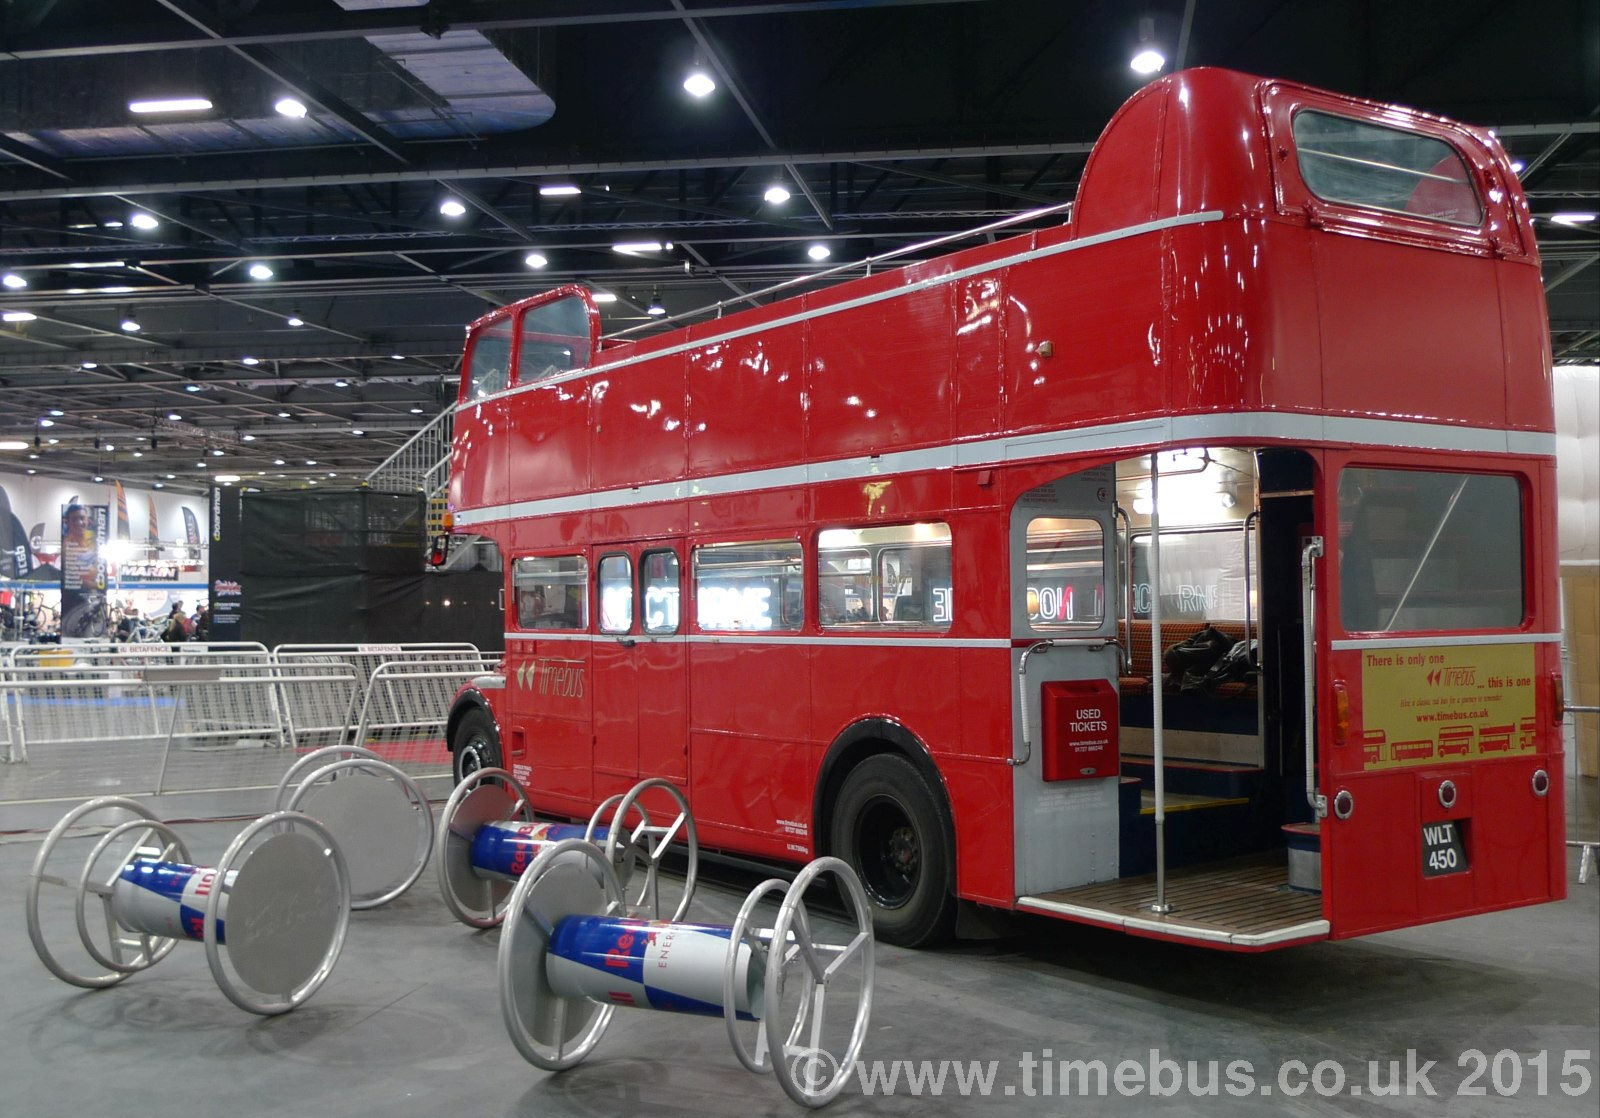 Open Top Bus Hire Timebus Space Open Topper With Open